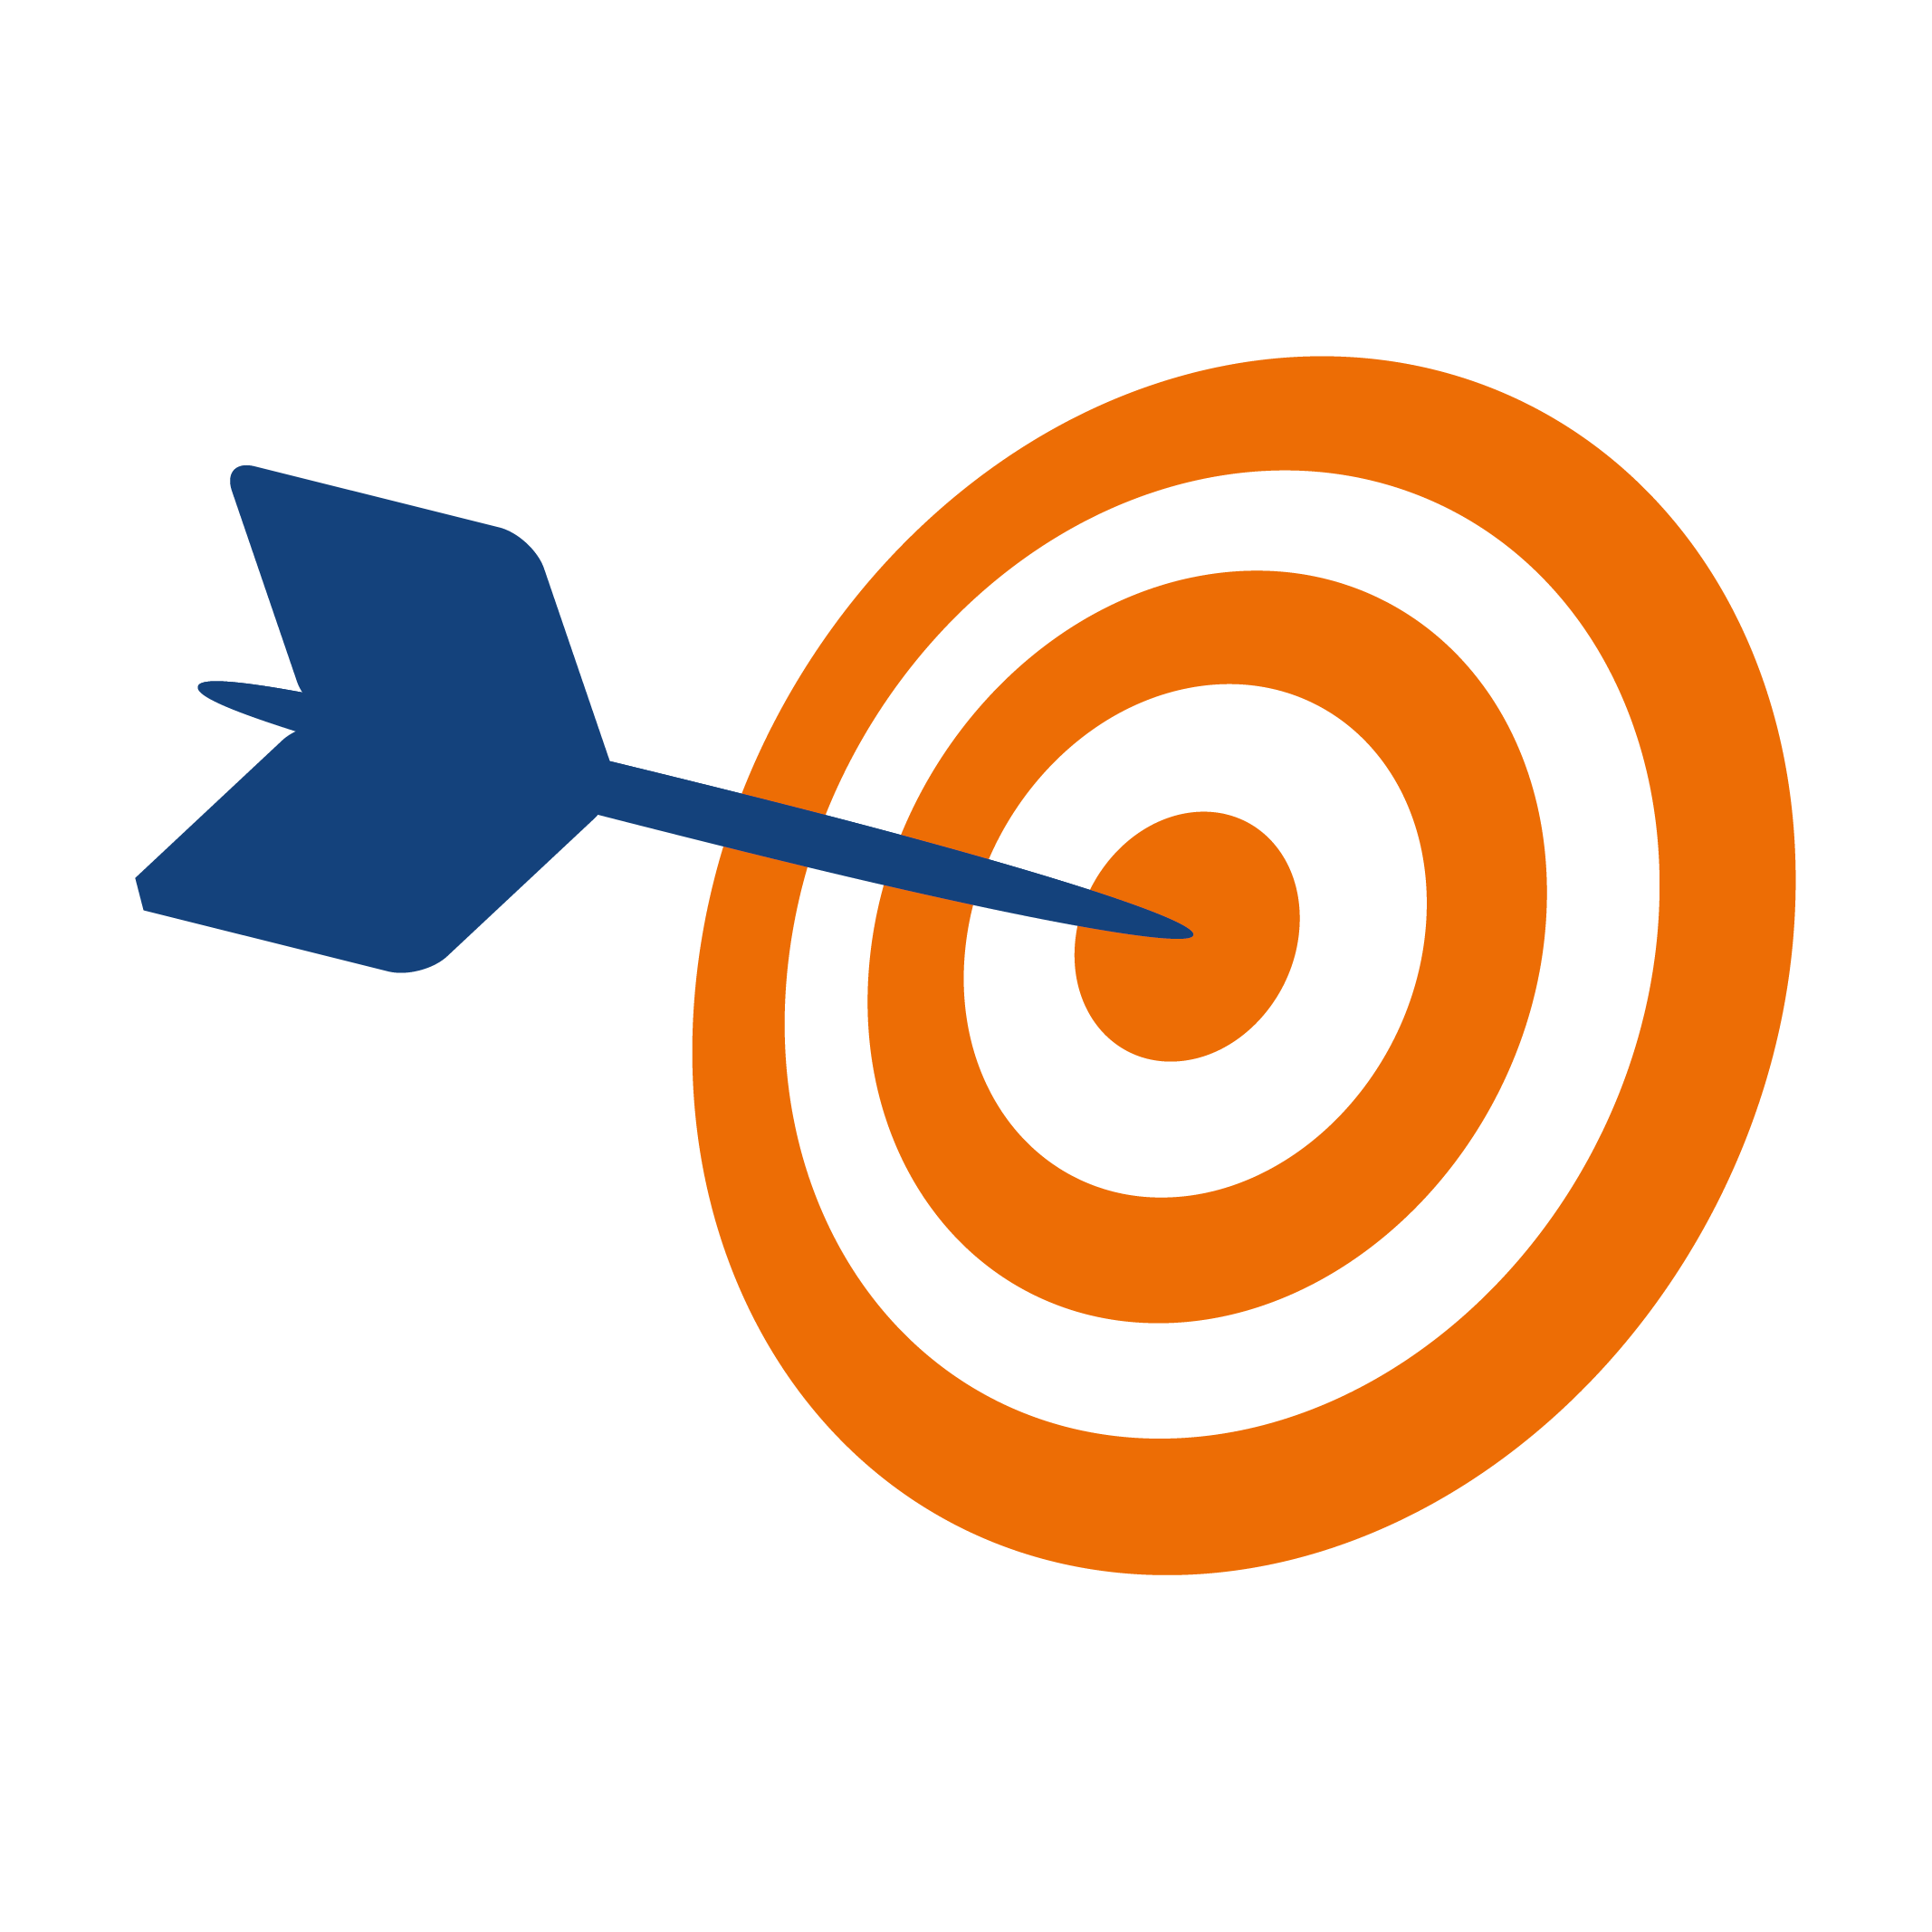 Png images free download. Focus clipart target arrow